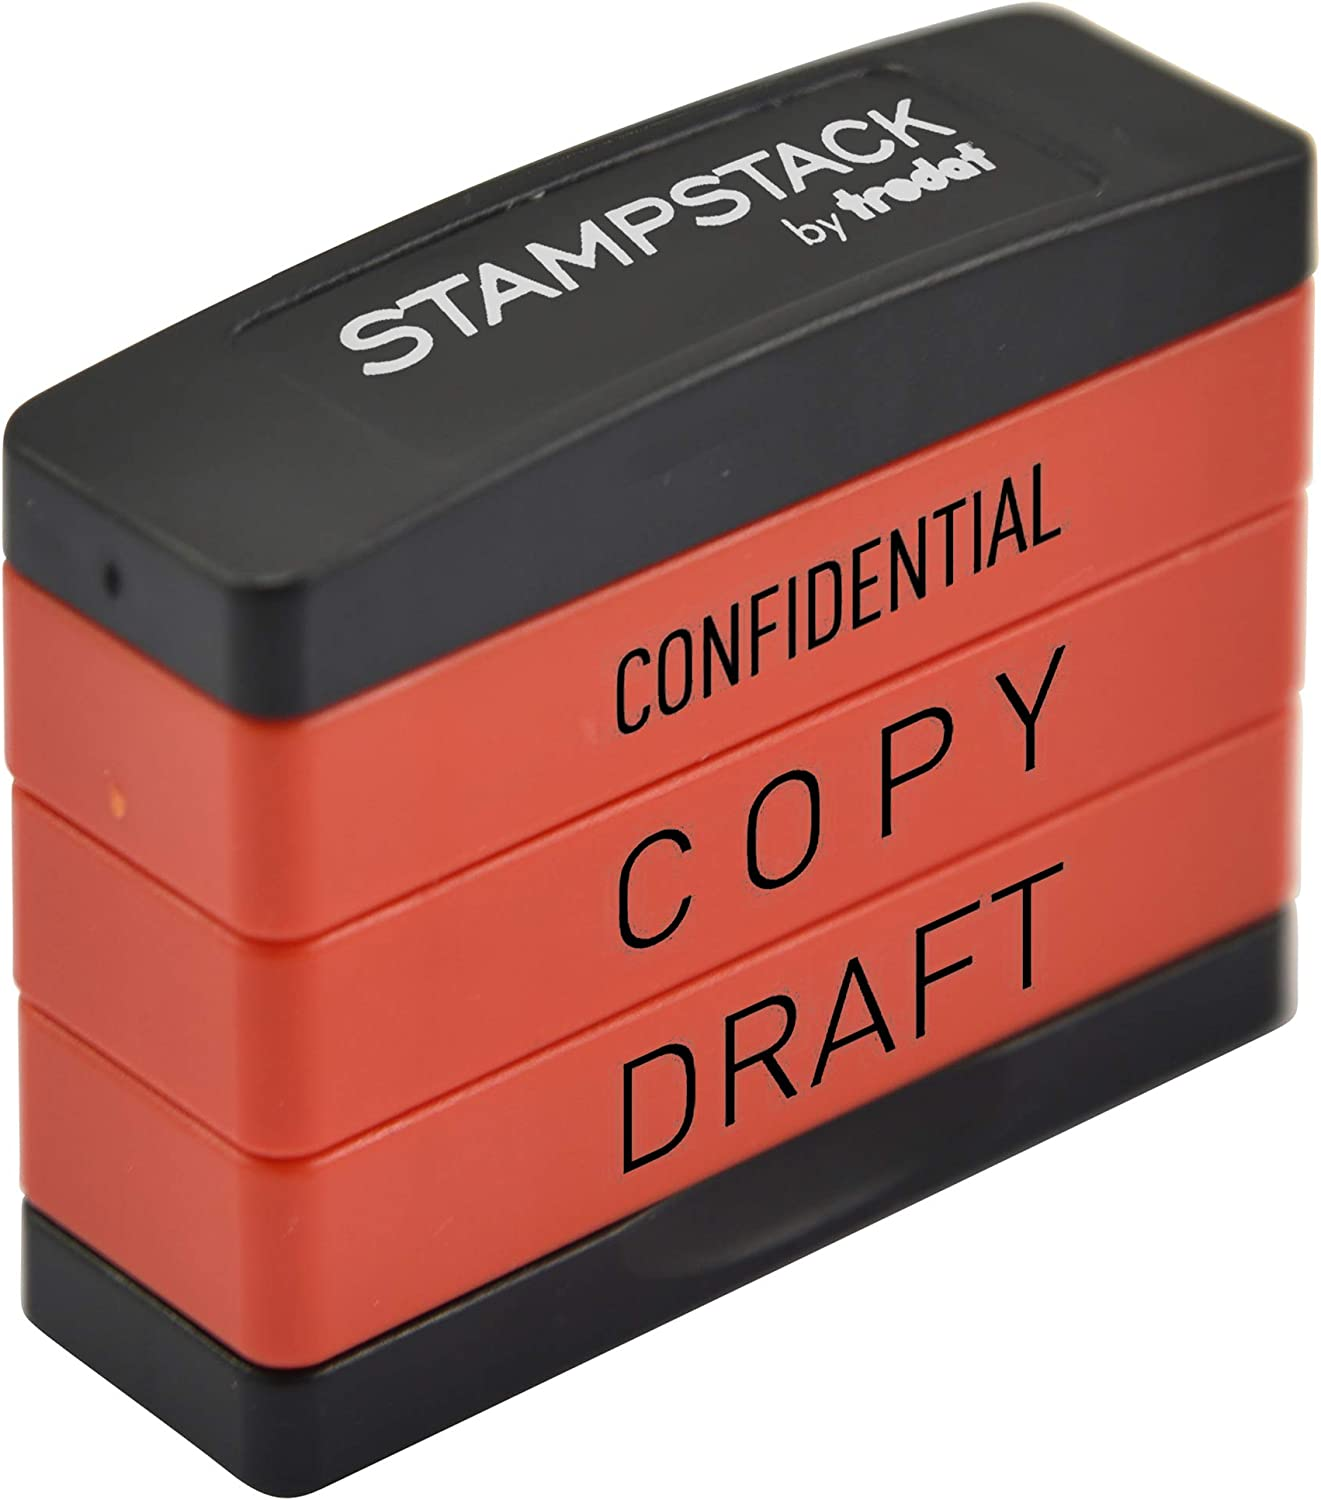 Draft Ref 11164 Trodat 3-in-1 Stamp Stack Professional Copy Confidential